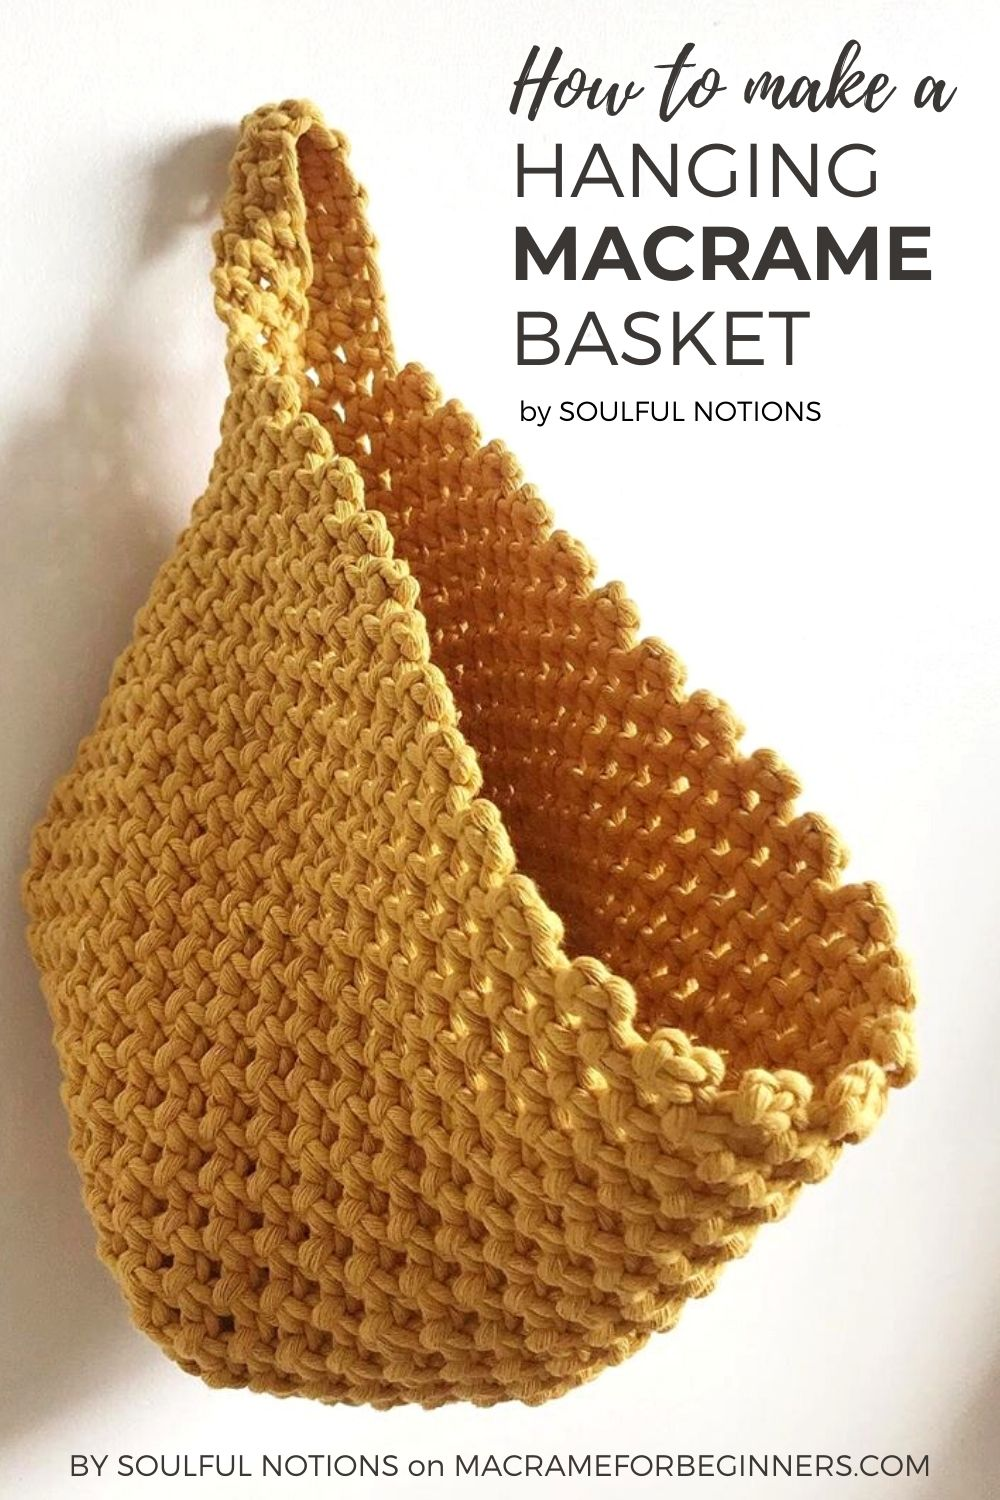 How to Make a Hanging Macrame Basket - Video Tutorial by Soulful Notions